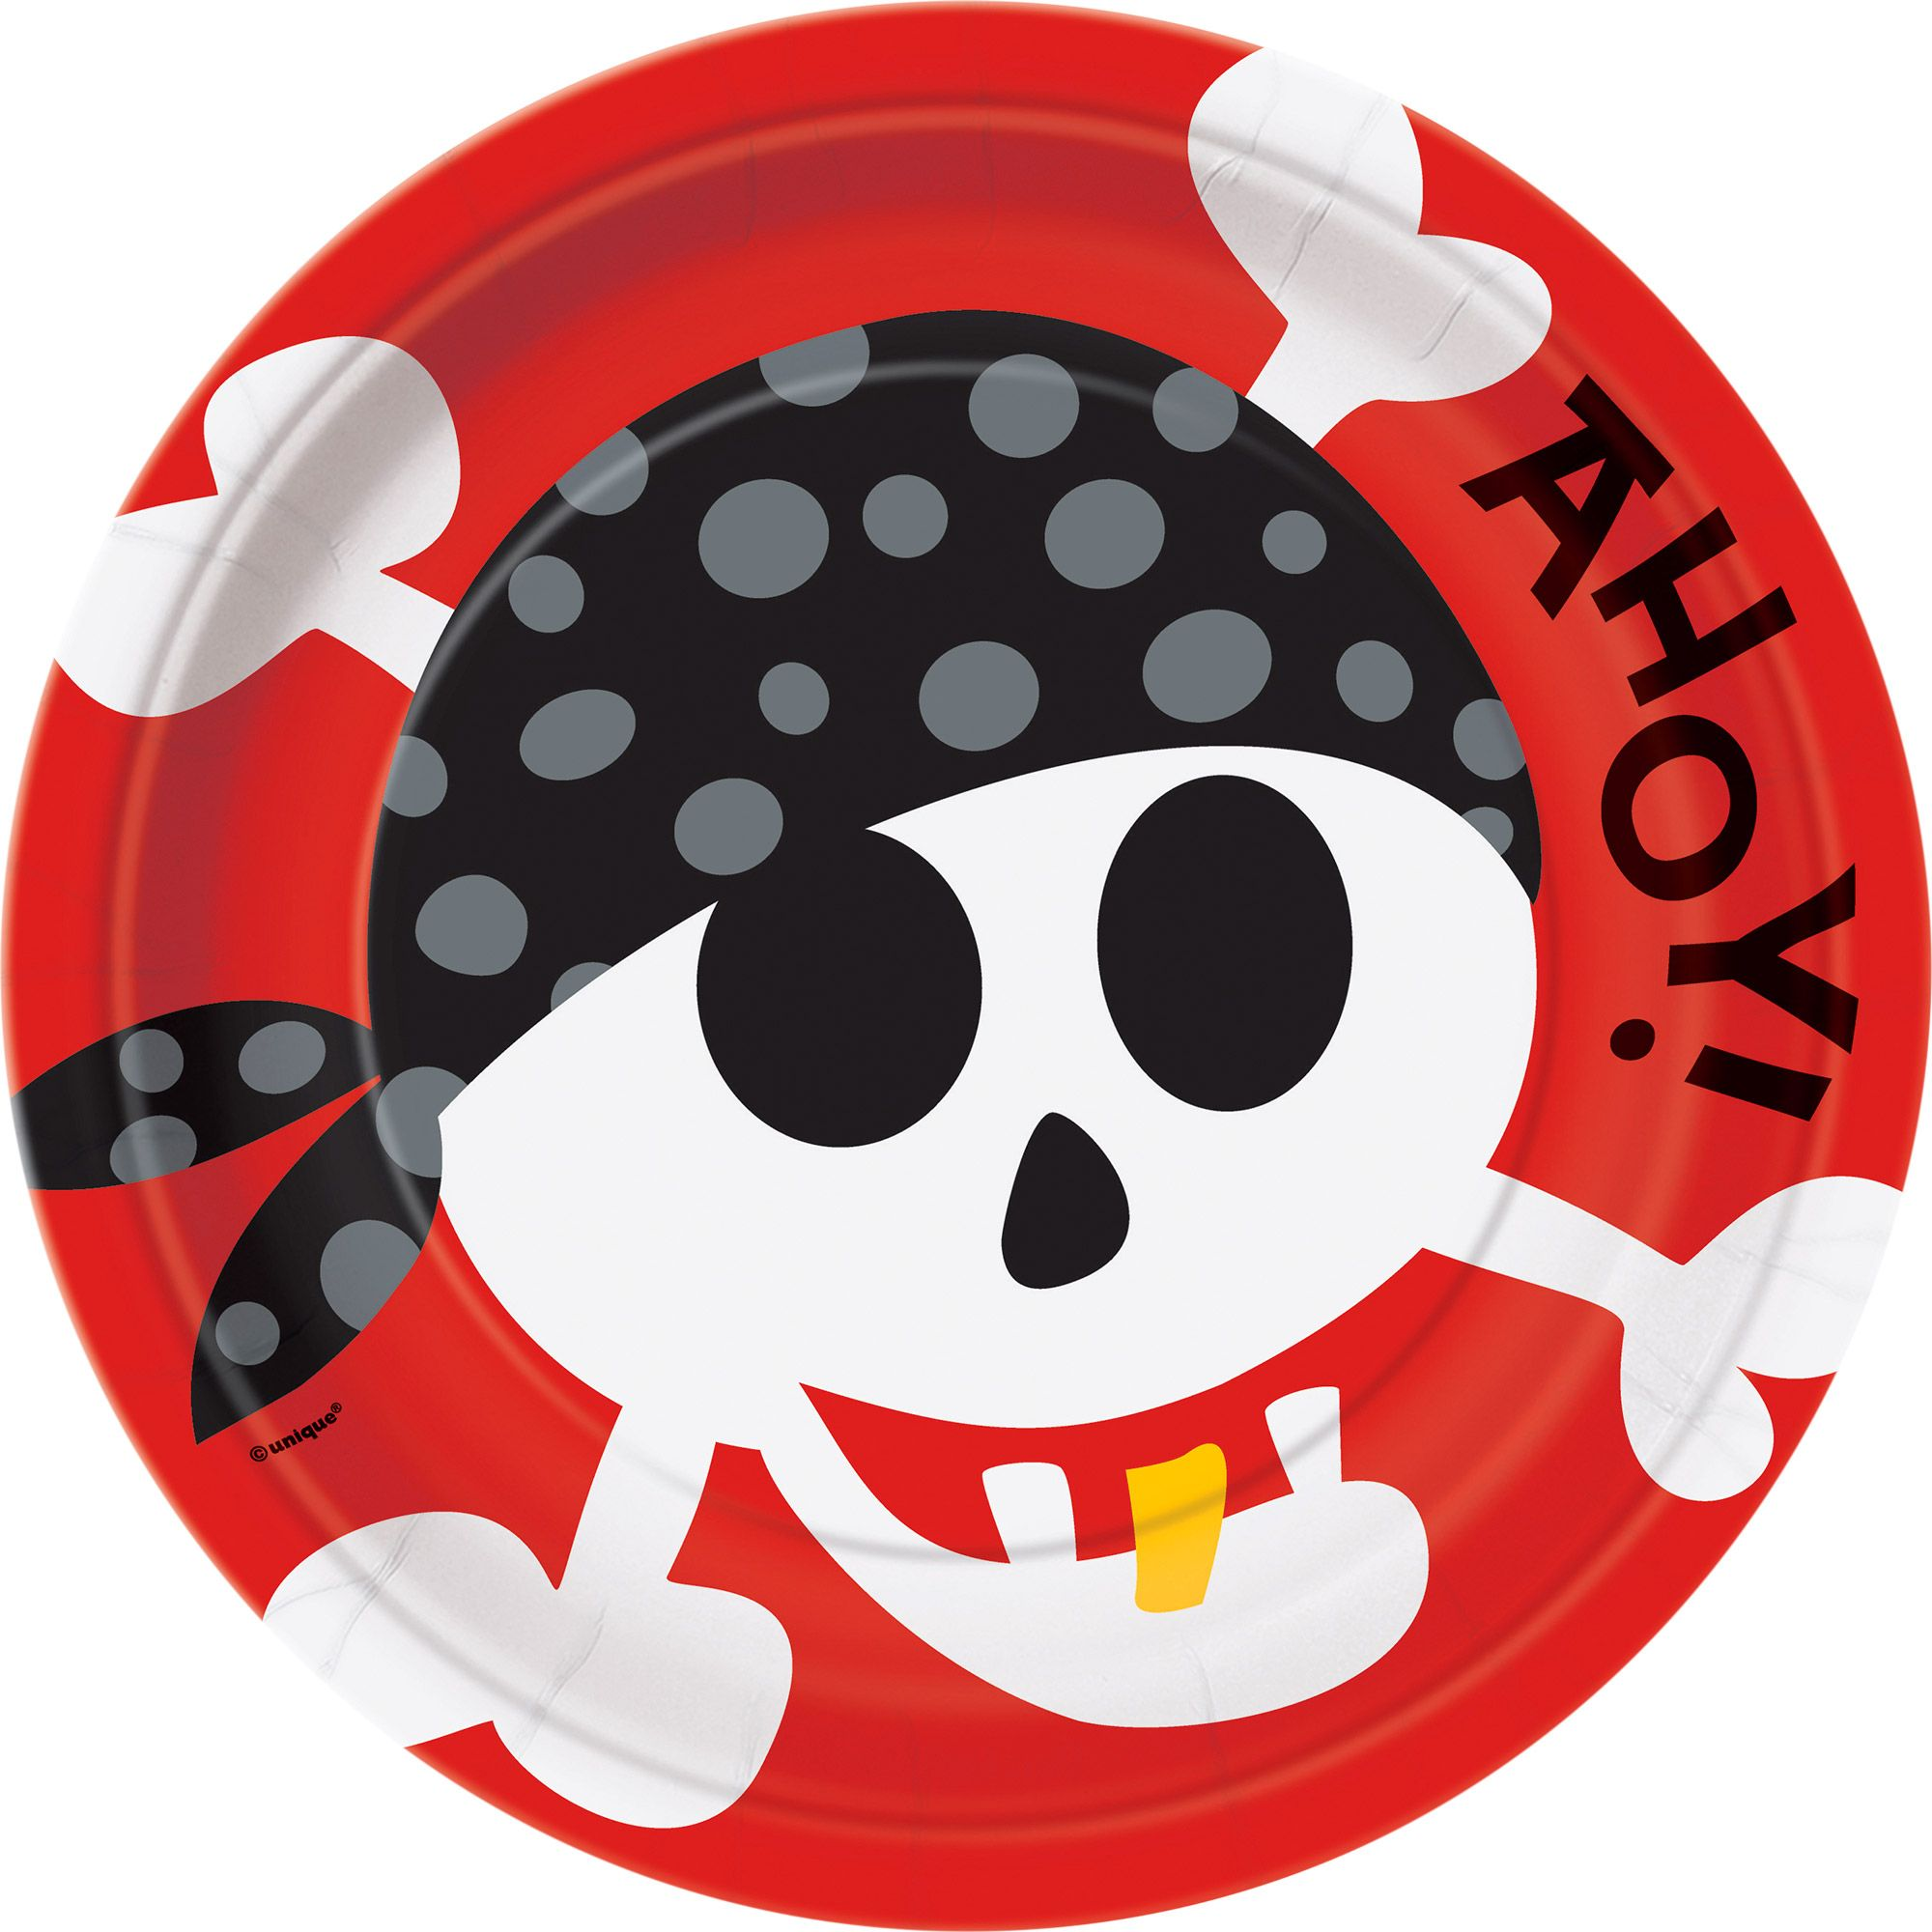 Pirate Birthday Dinner Plate 8ct Birthday Party Supplies Plates BB100467